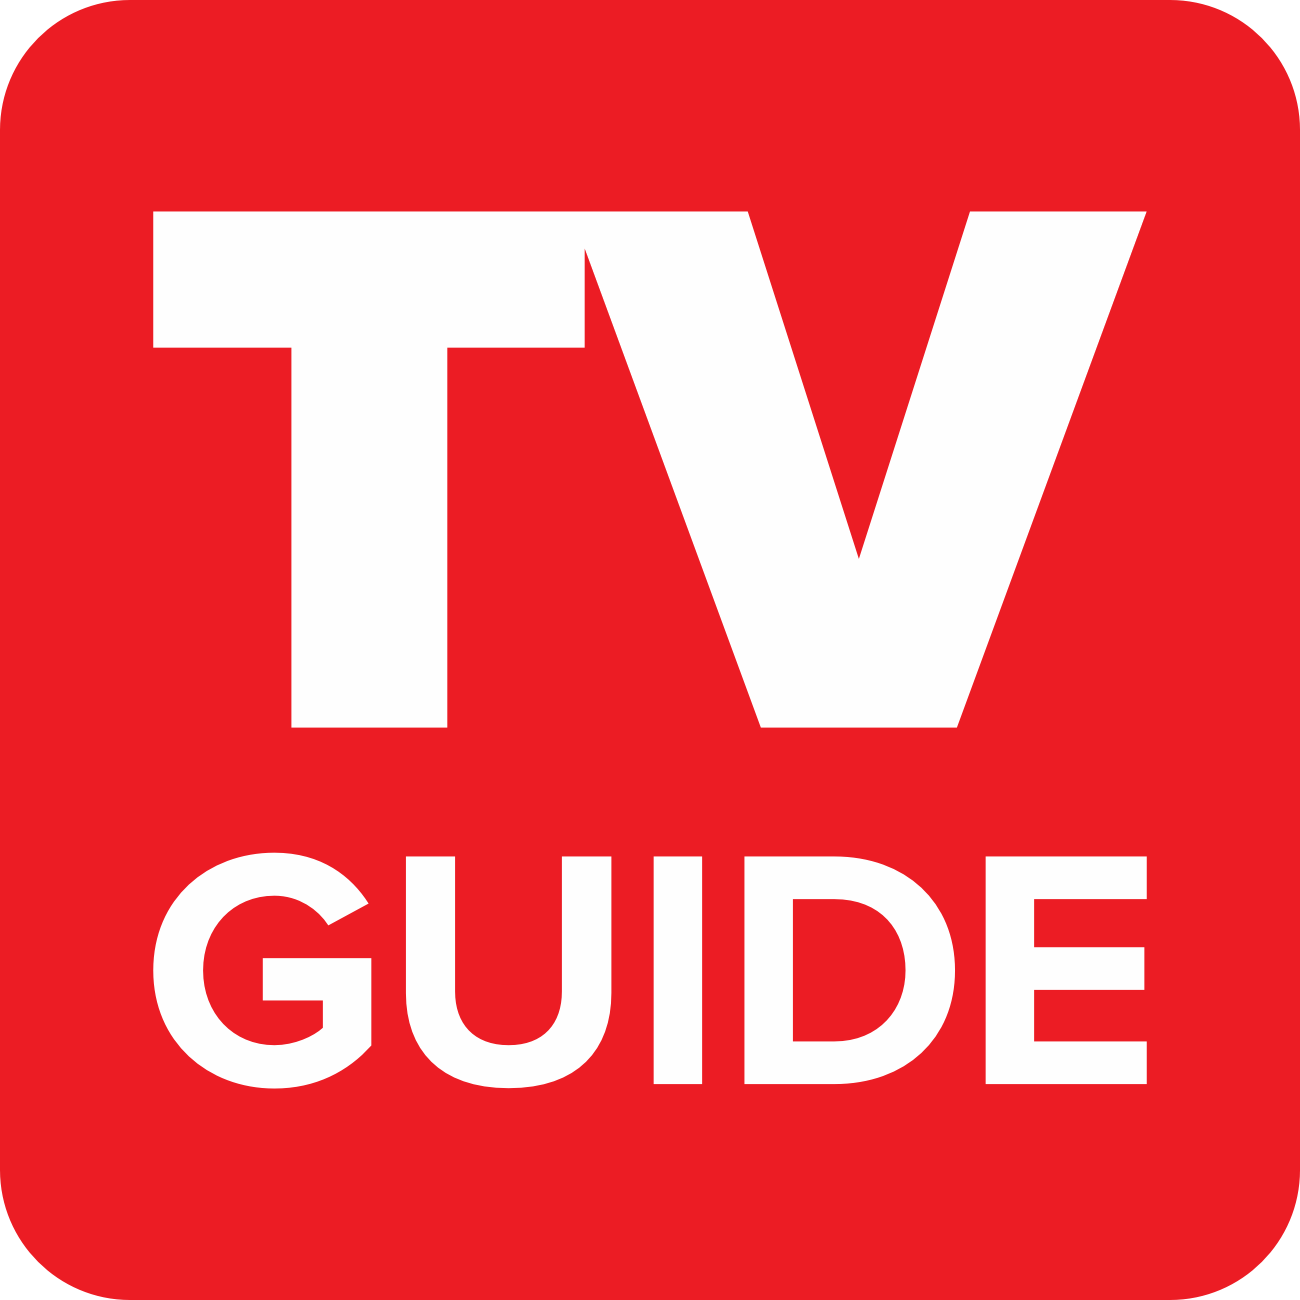 Tv Guide, Tv Listings, Online Videos, Entertainment News And With Winter 2020 Tv Guide Premier Calendar